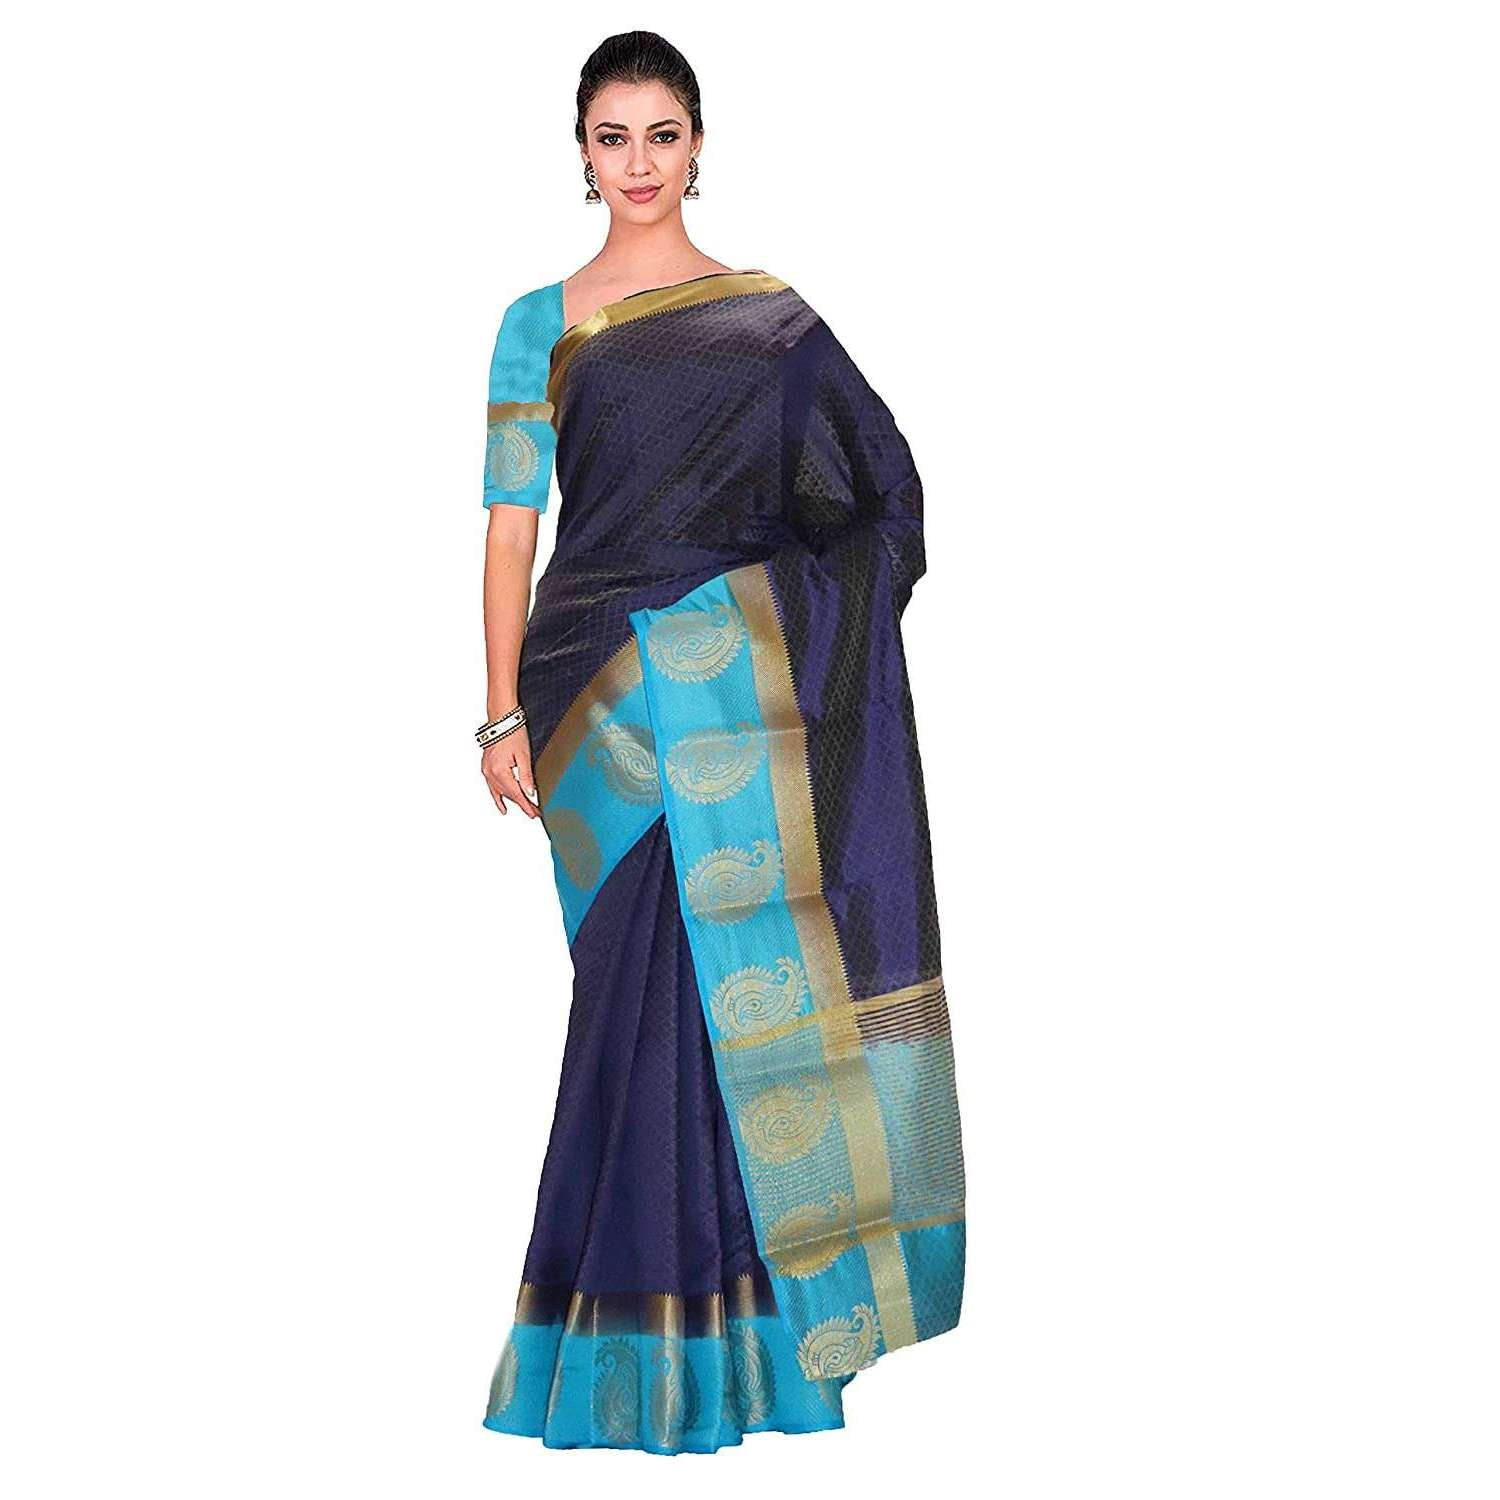 arars Women's kanchipuram kanjivaram pattu kanjivaram embosed plain silk saree with blouse (499, navy)